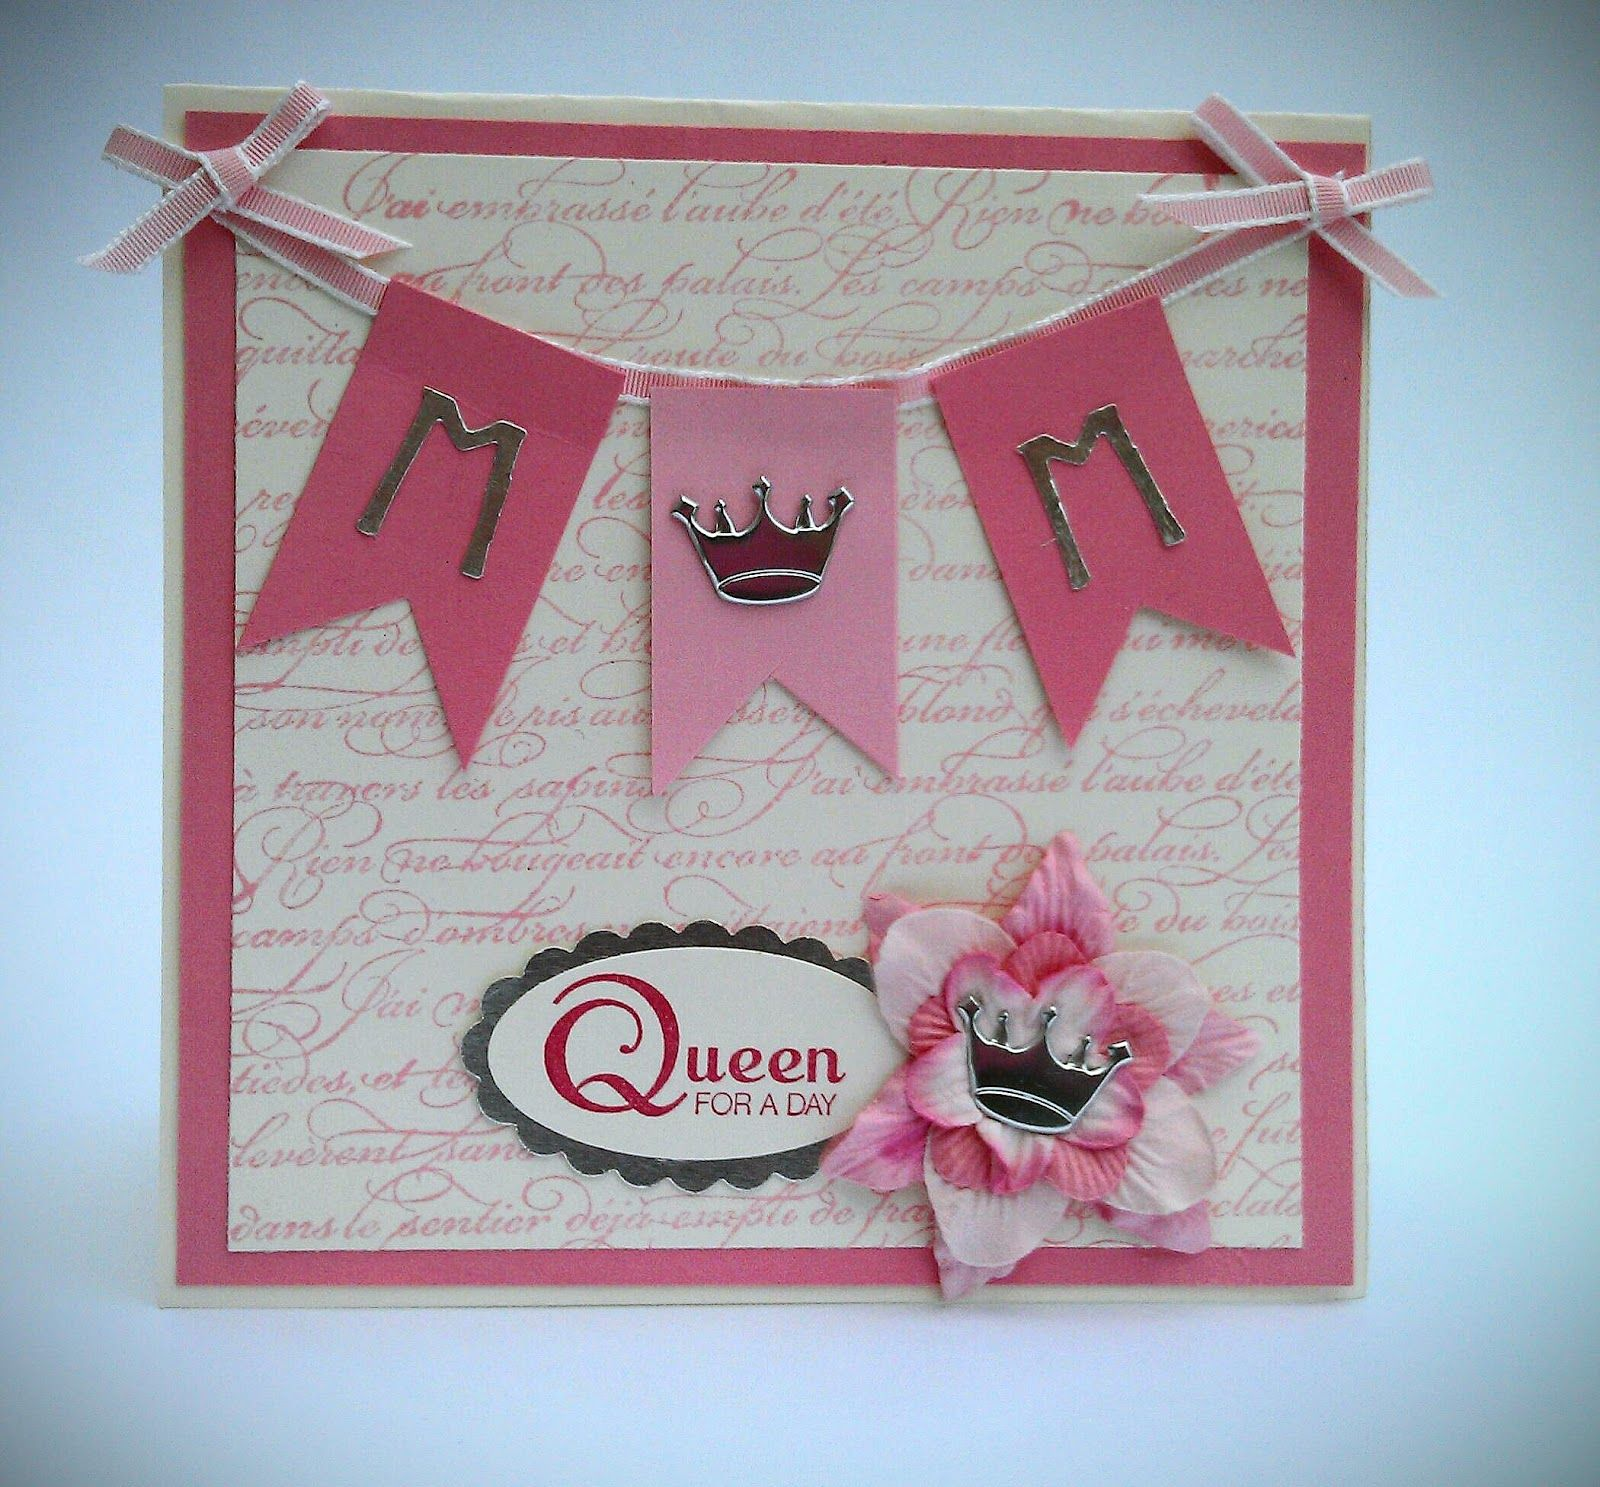 Queen Decorations For A Day